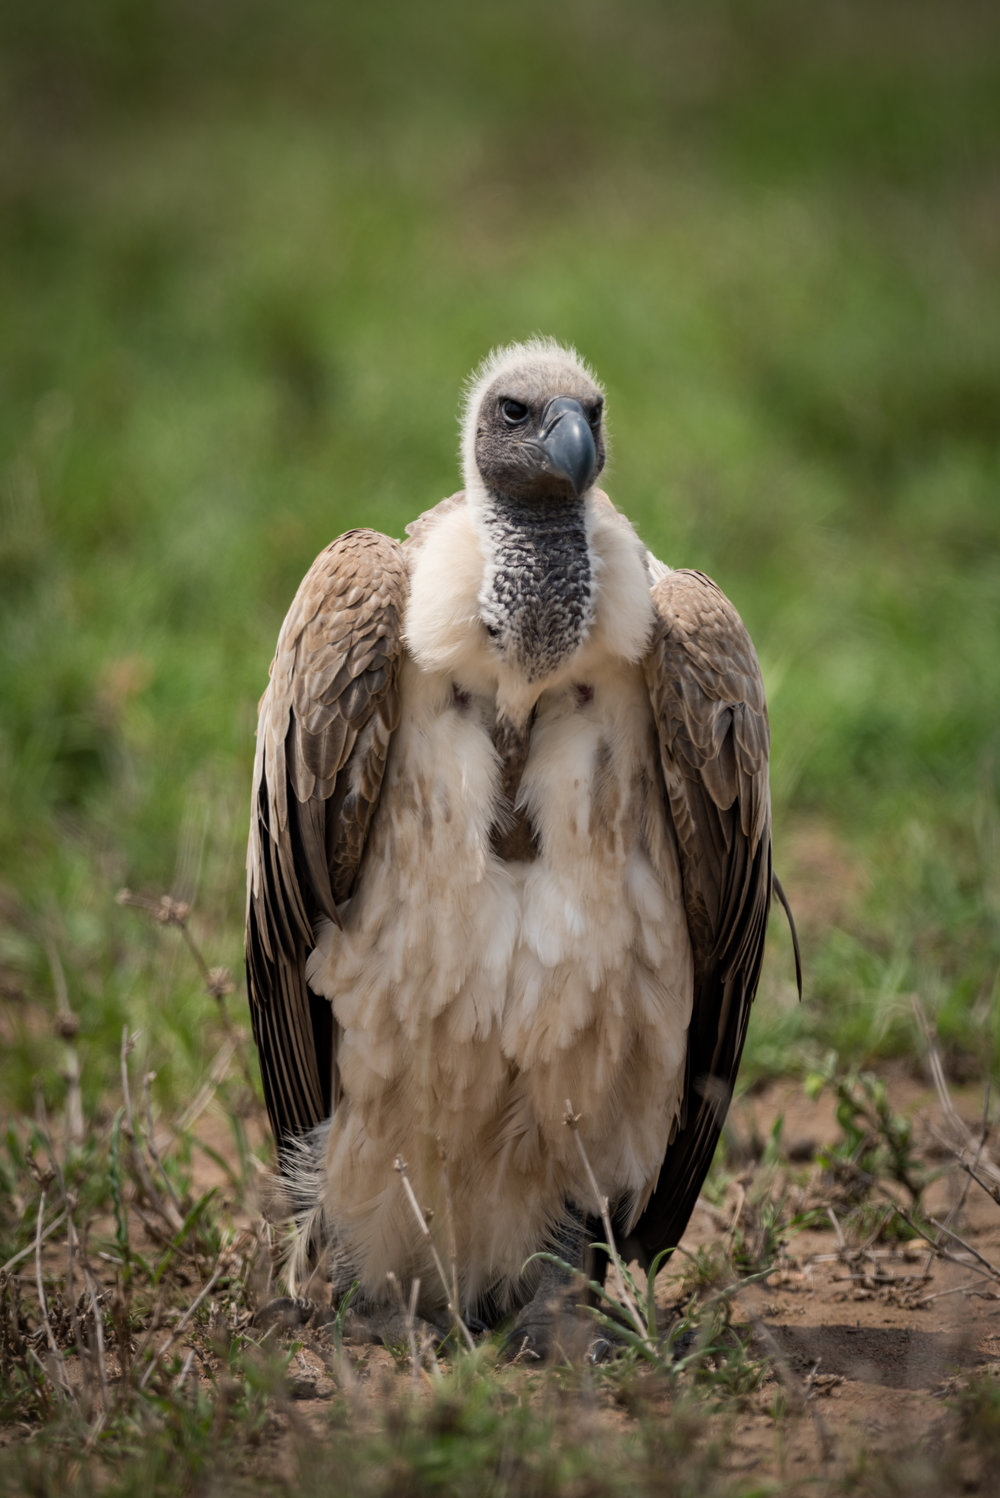 White-backed vulture on grass with wings folded